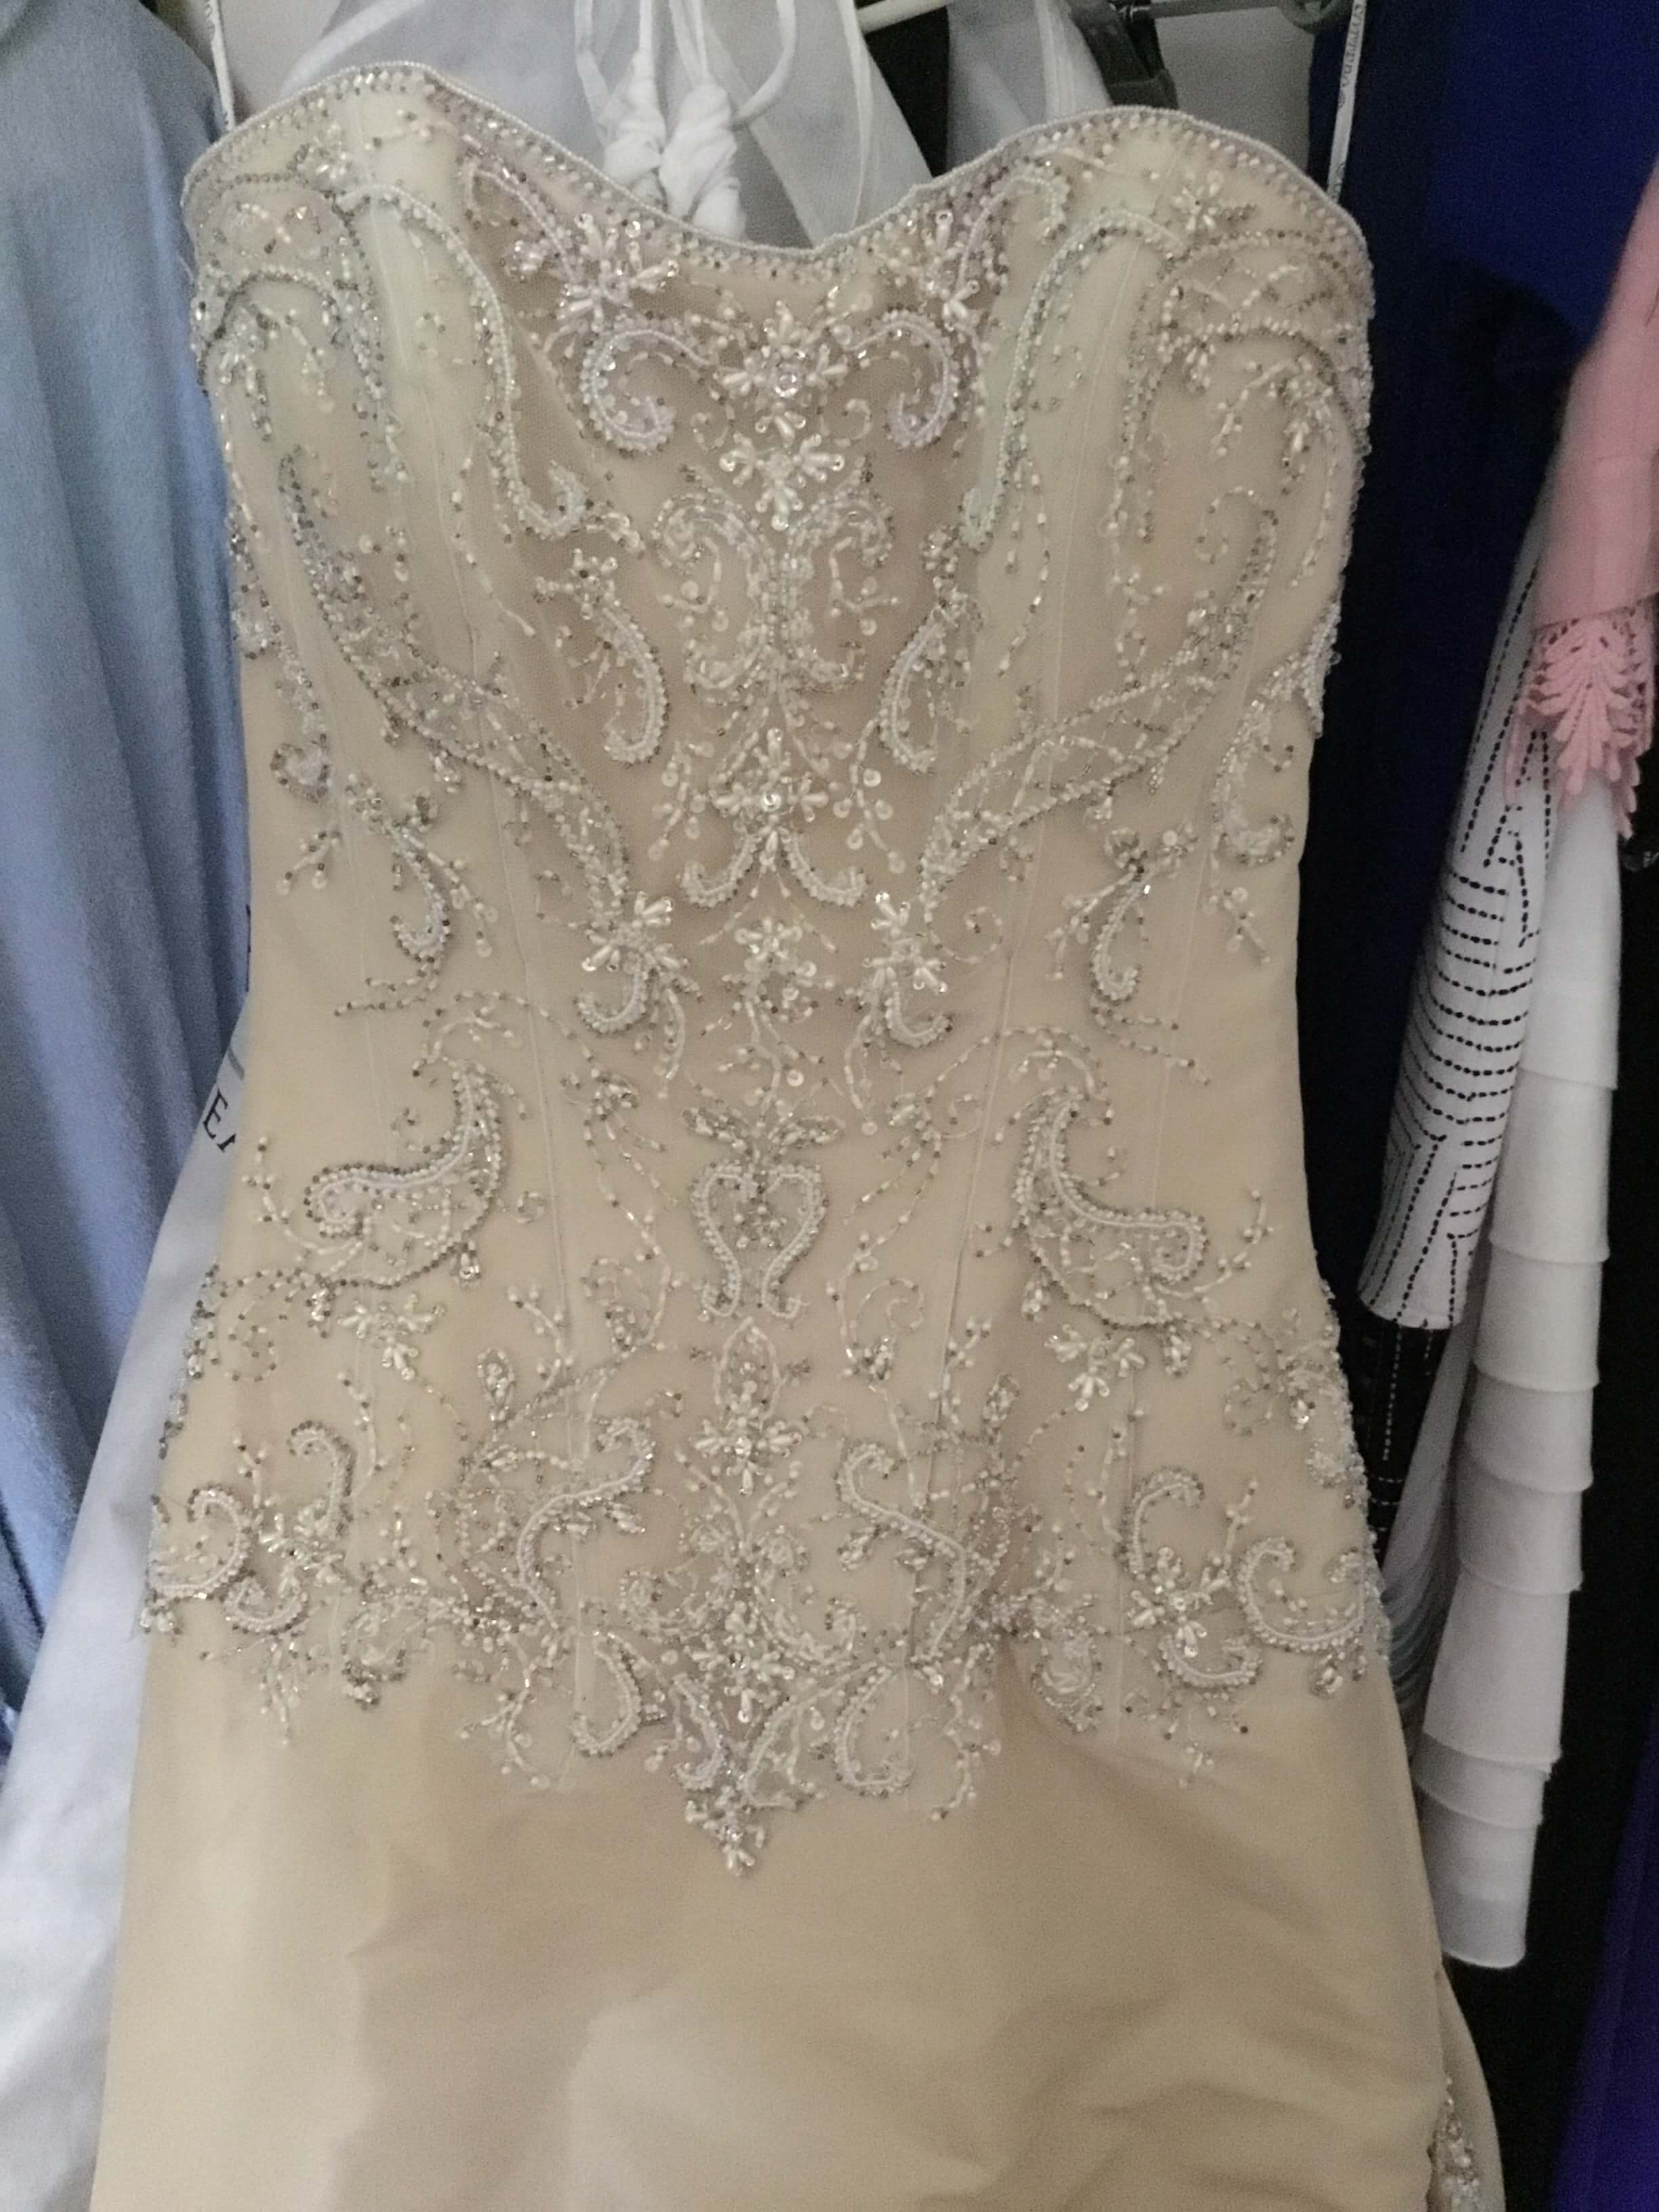 Maggie Sottero – Size 6 Fit and Flare dress | Second hand wedding dresses Kilsyth - Size 6